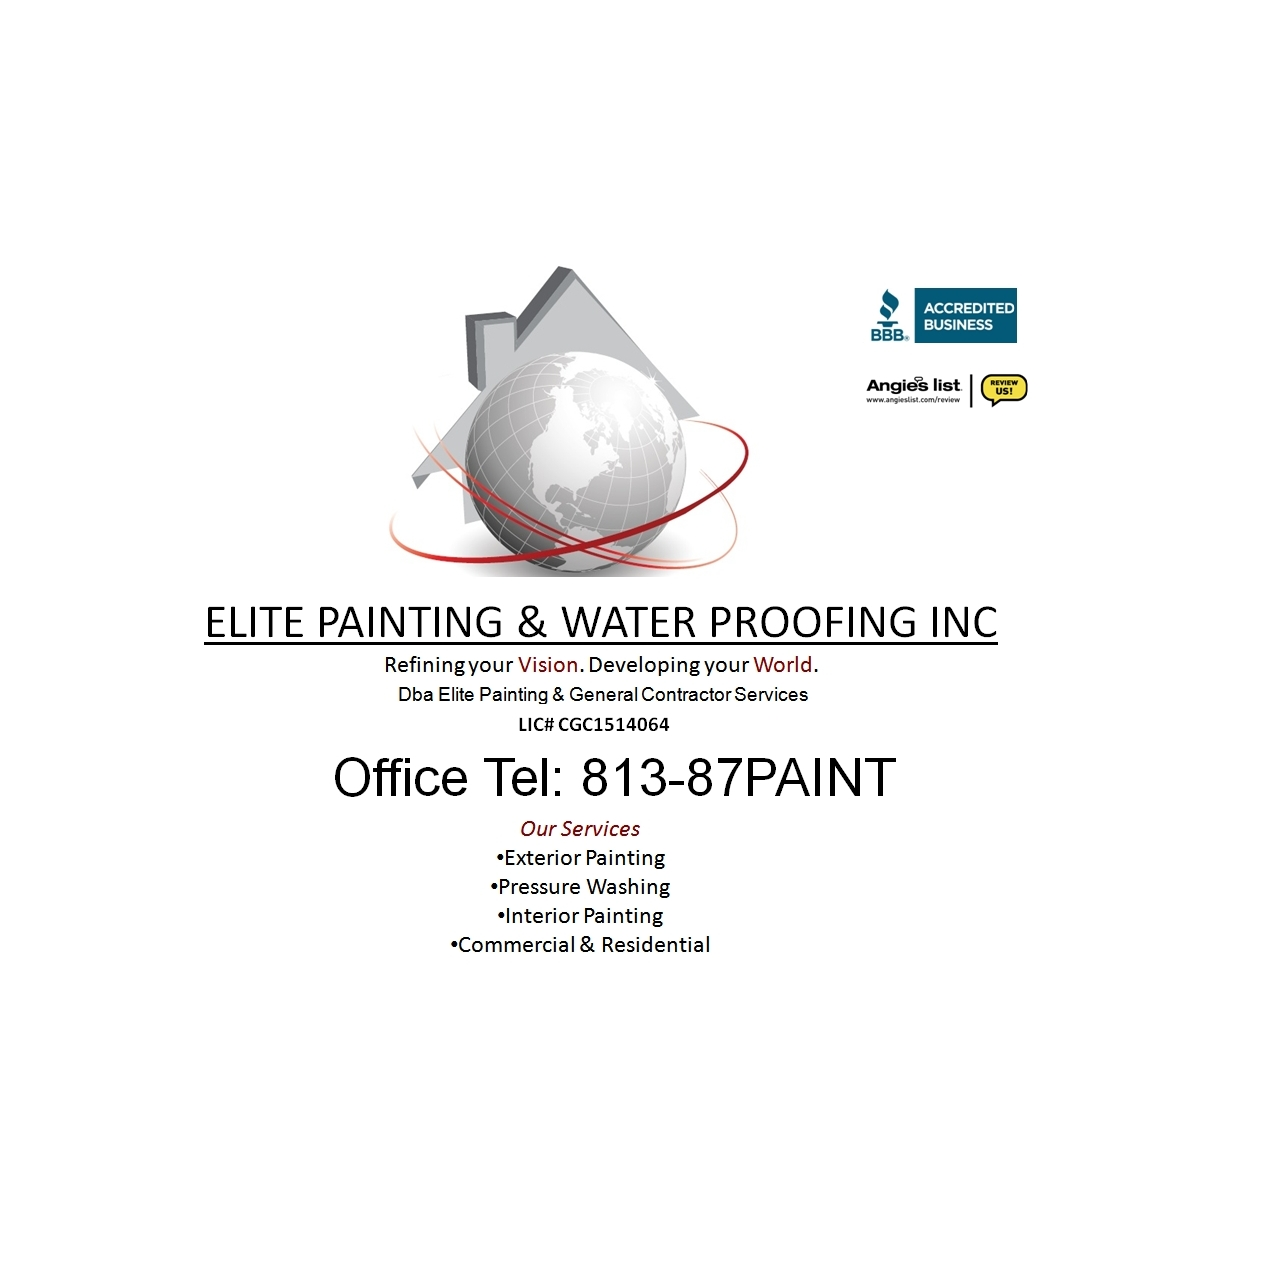 Elite Painting and Waterproofing Inc Dba Elite Painting & General Contractors Services Inc.